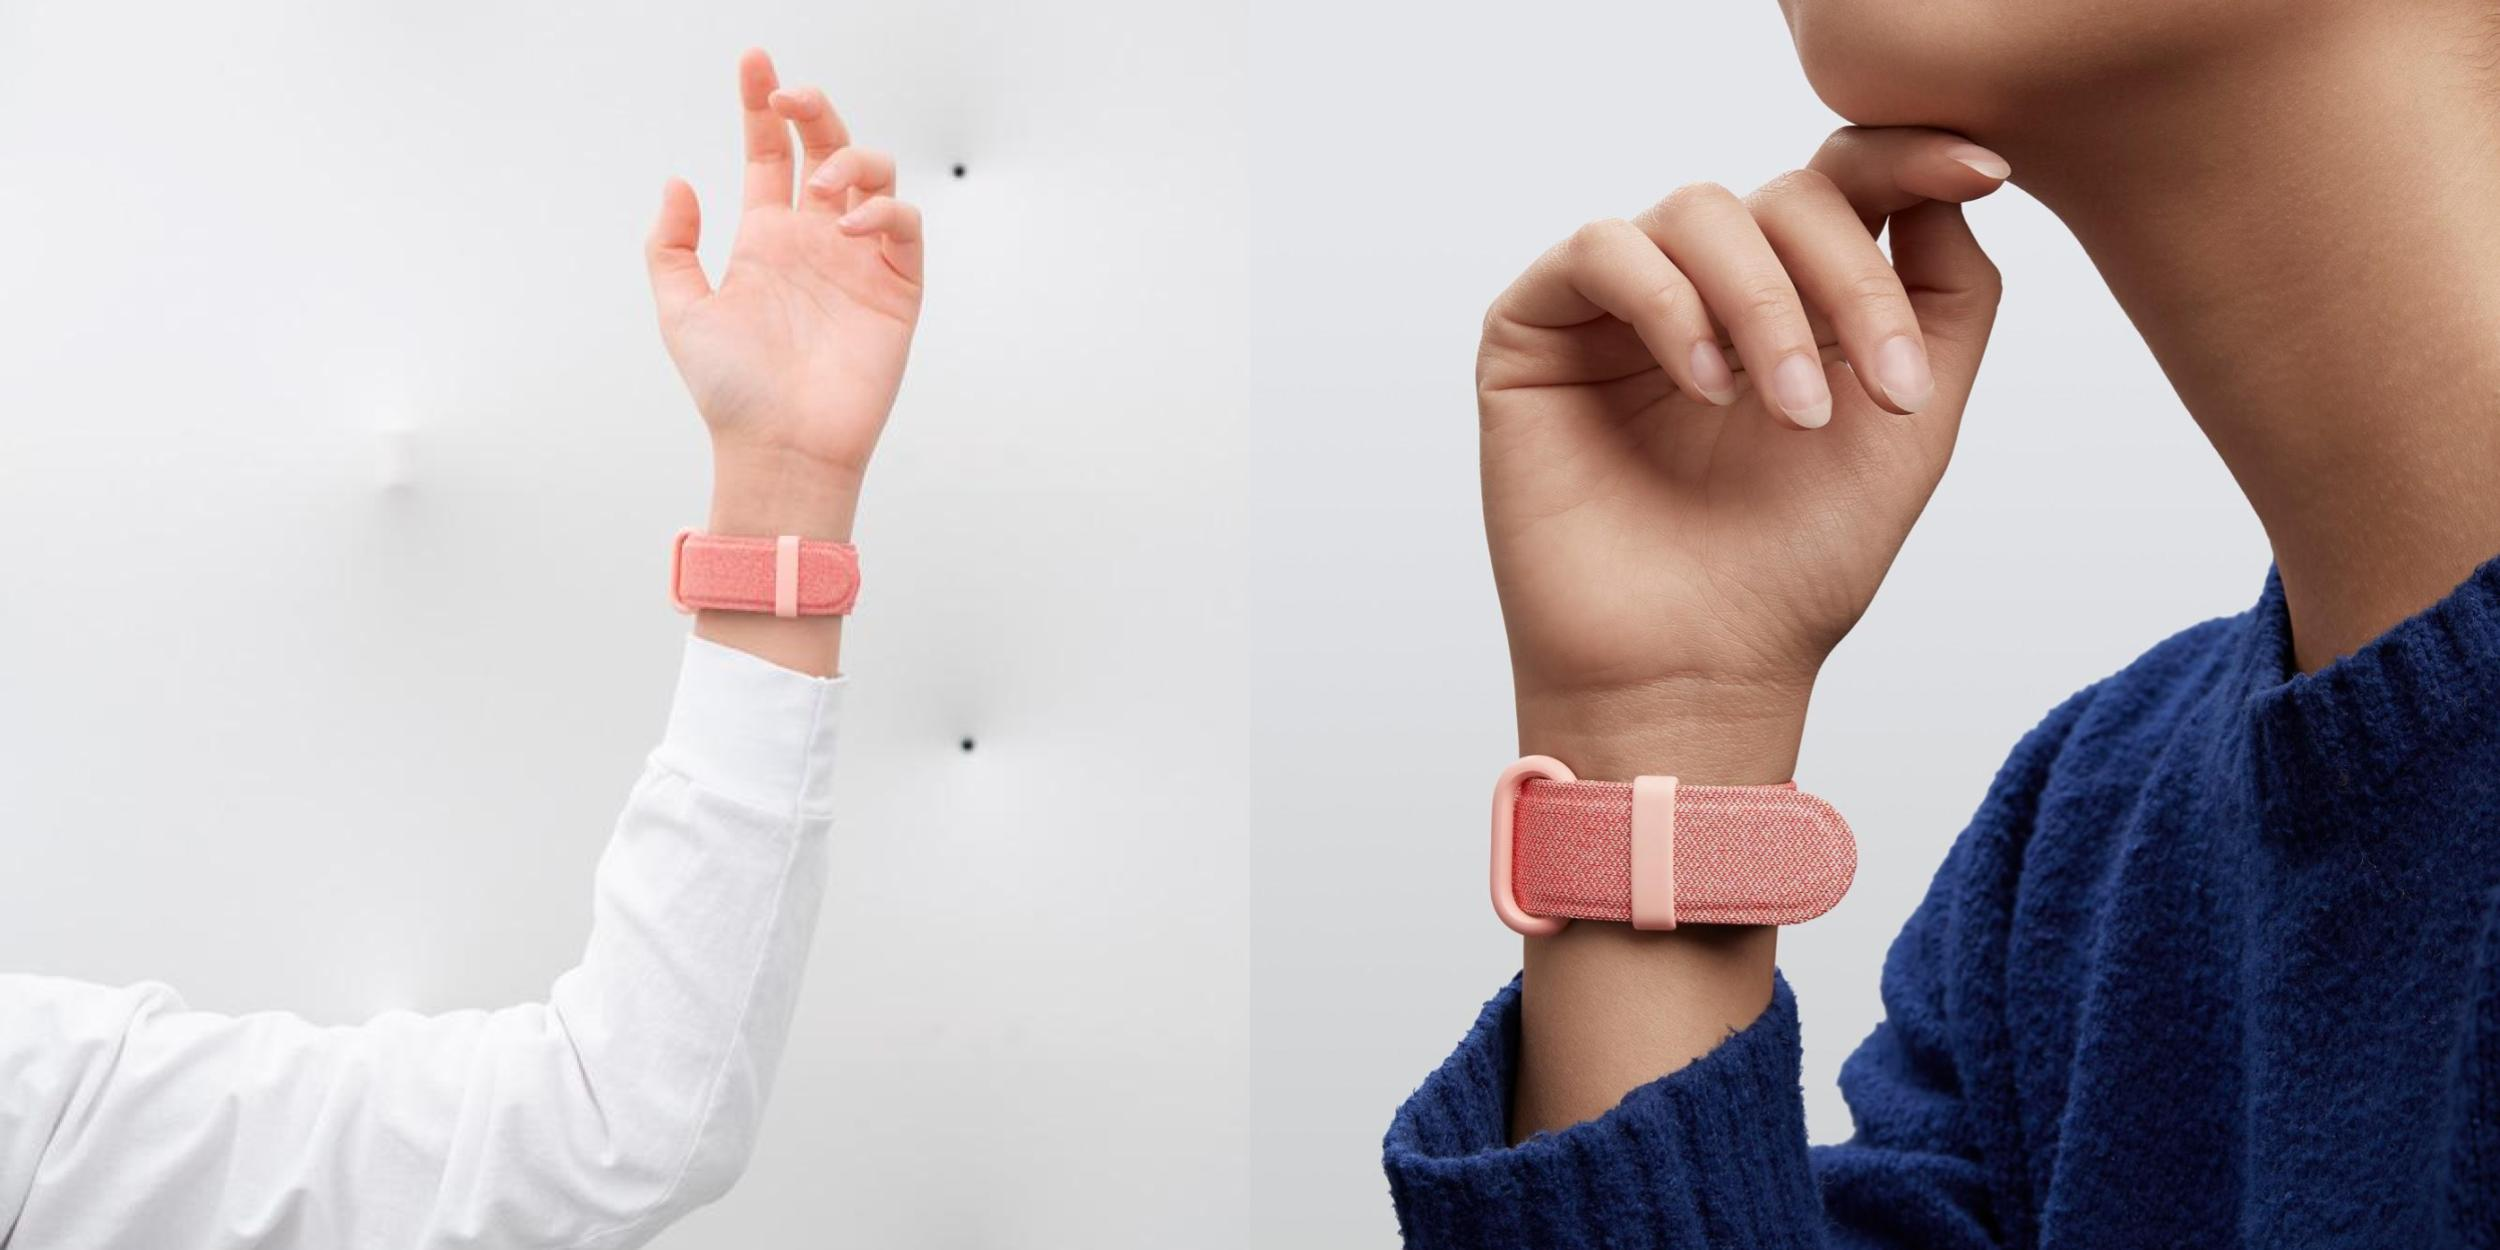 Did Google and ATAP really make a health band for a one-off art project?